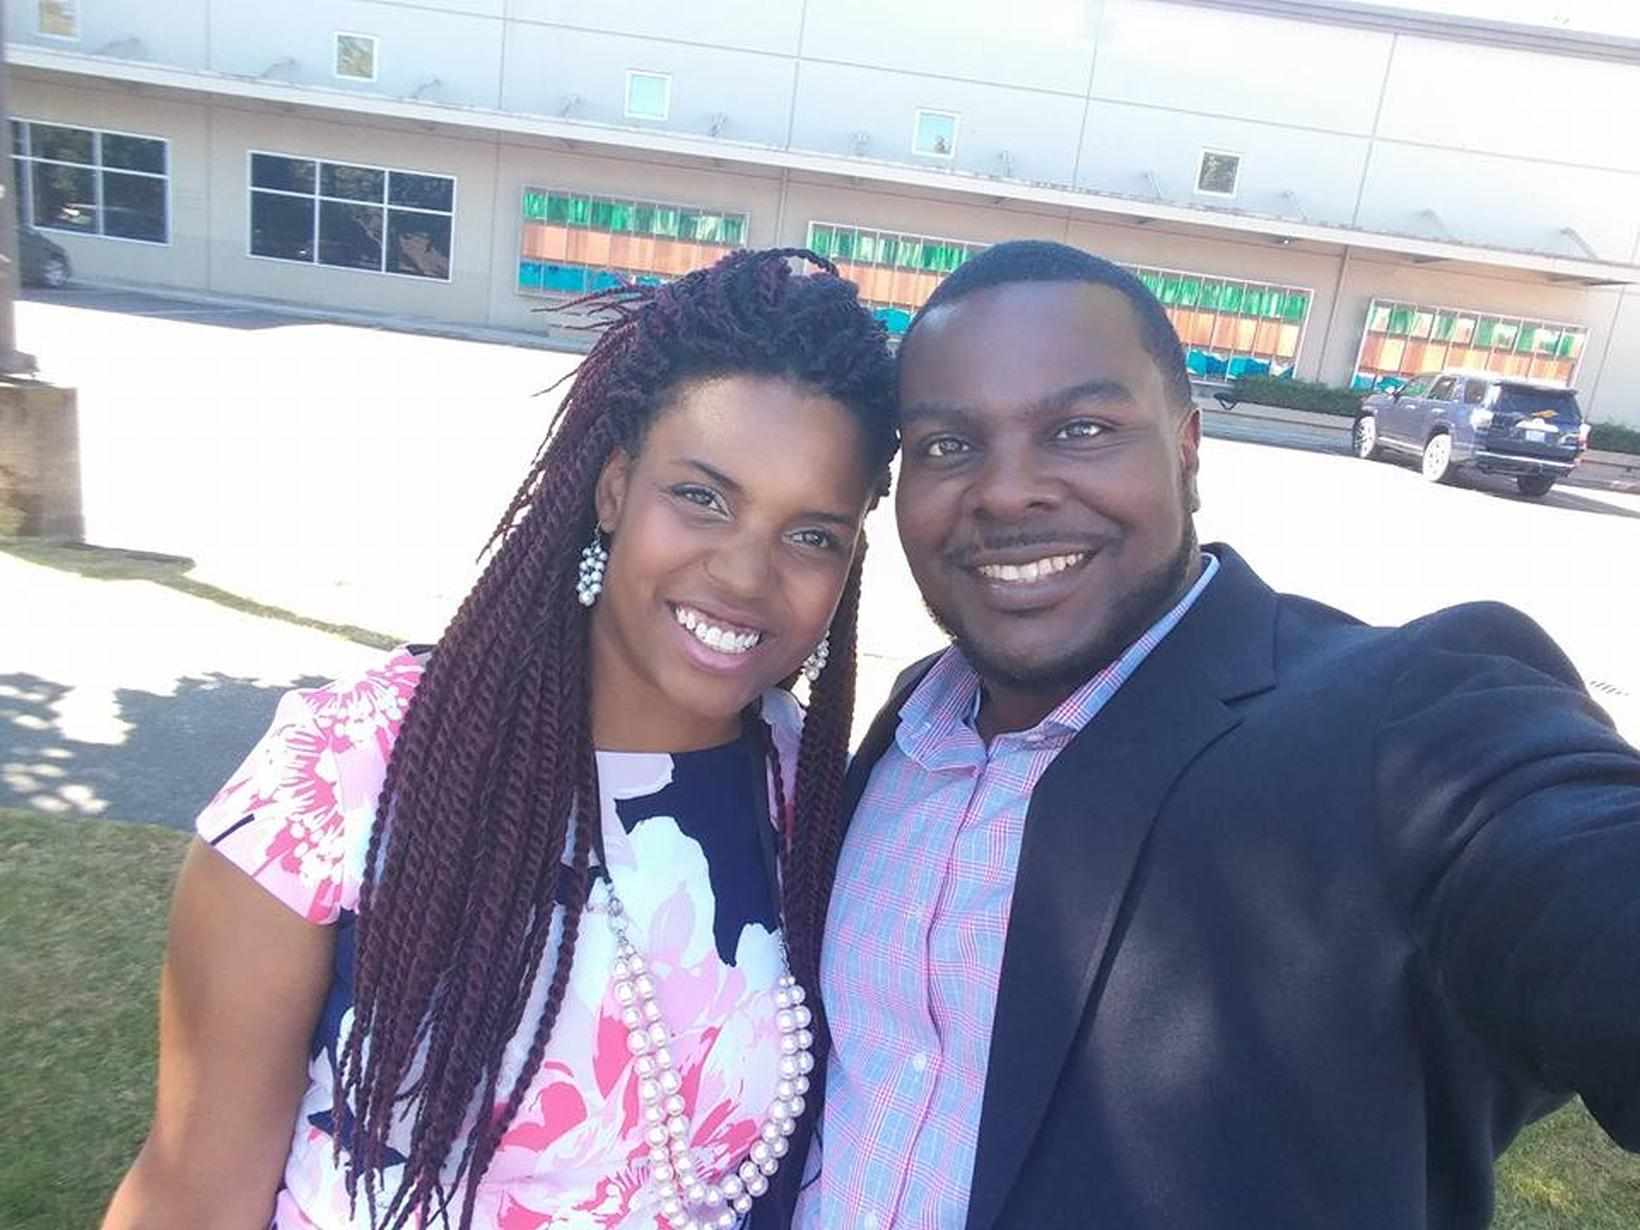 Jamina & Jermaine from Renton, Washington, United States